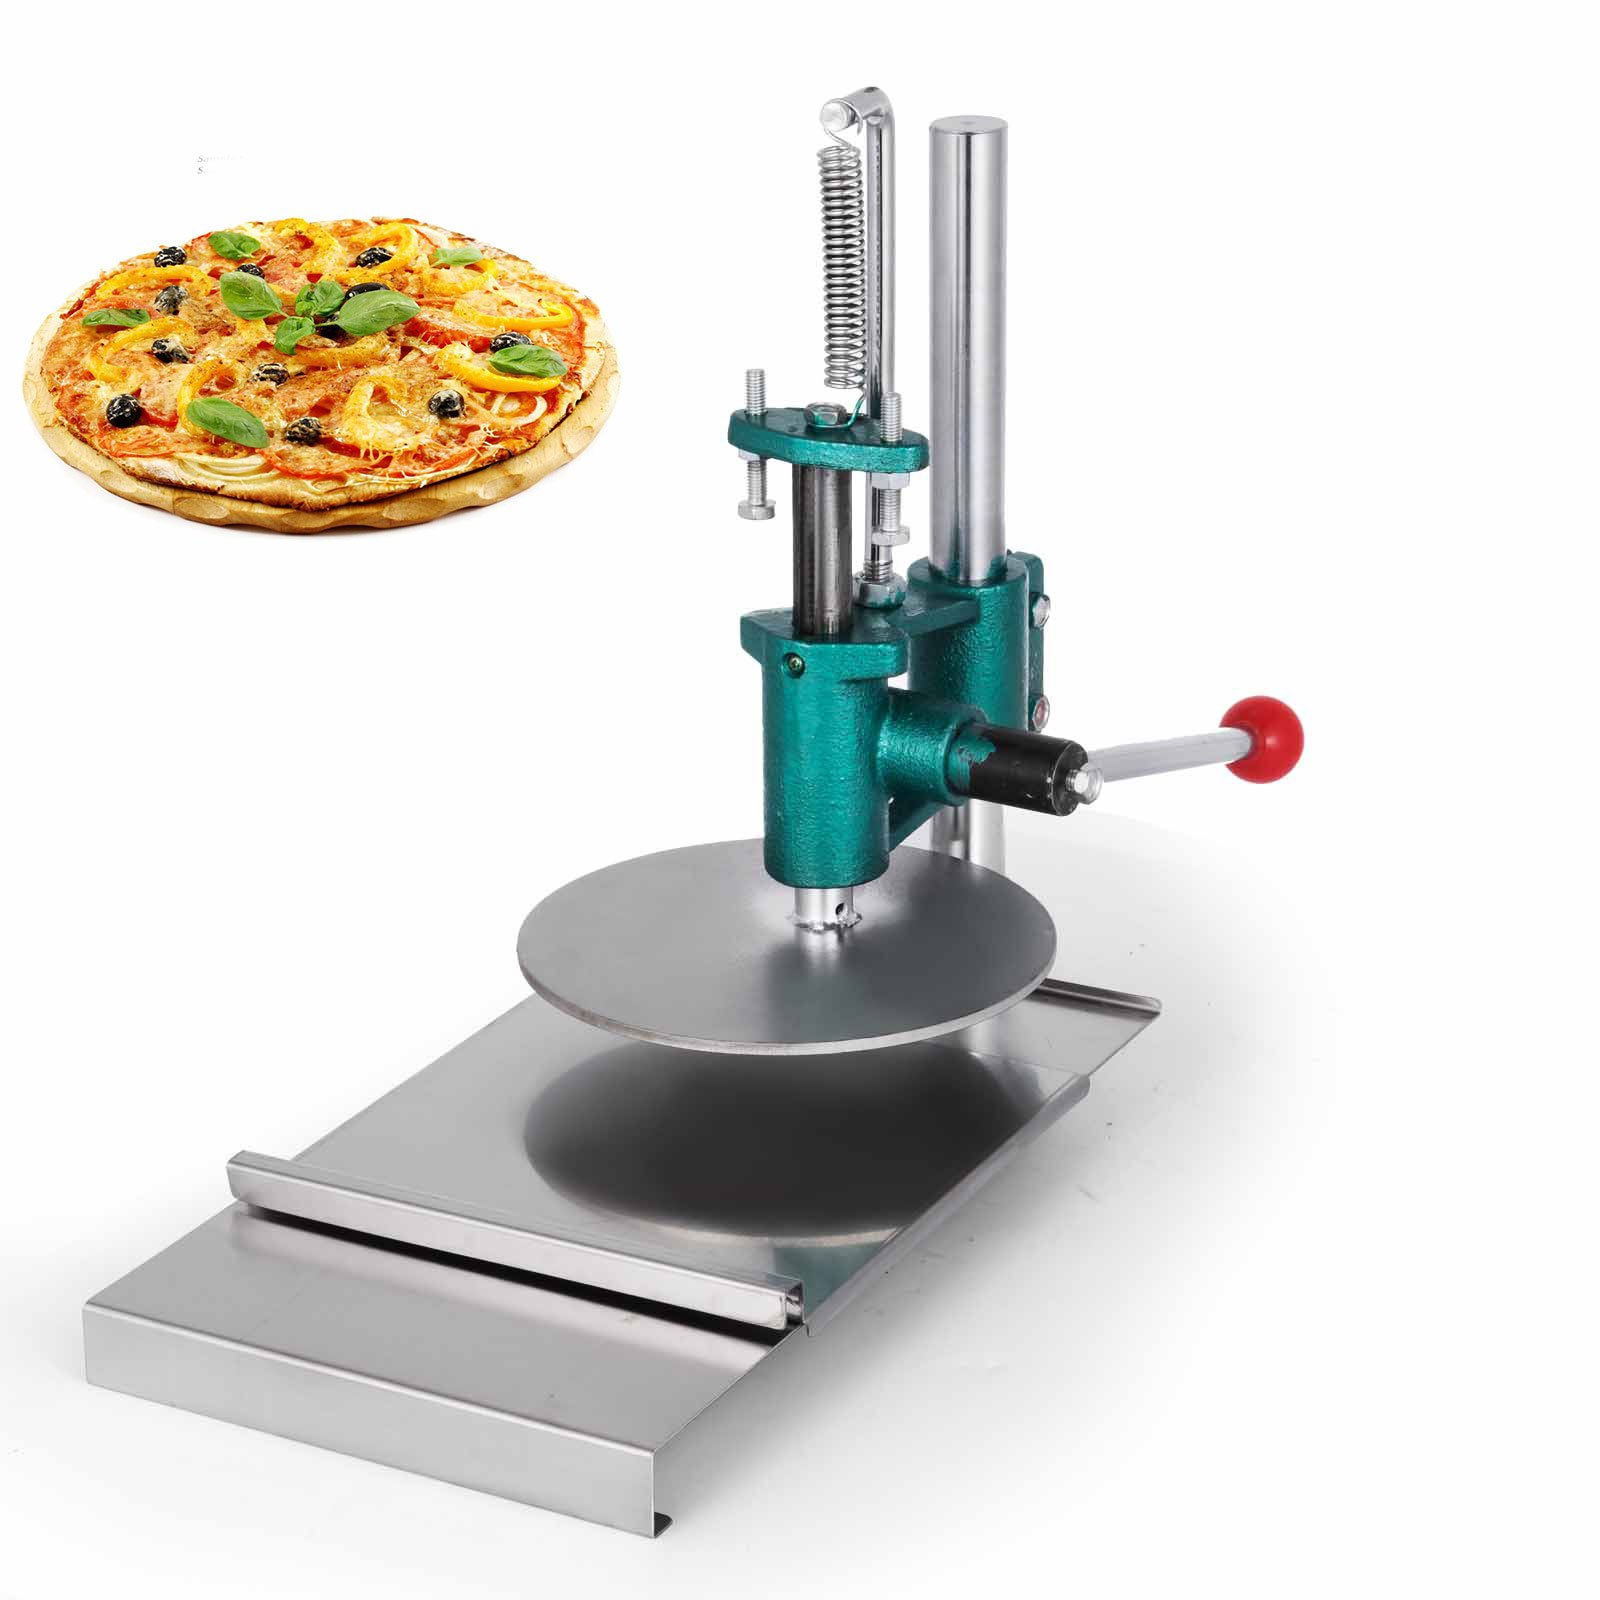 VEVOR Pizza Pastry Press Machine Stainless Steel Household Pizza Dough Pastry Manual Press Machine Metal Plate Diameter 20CM/7.87inch